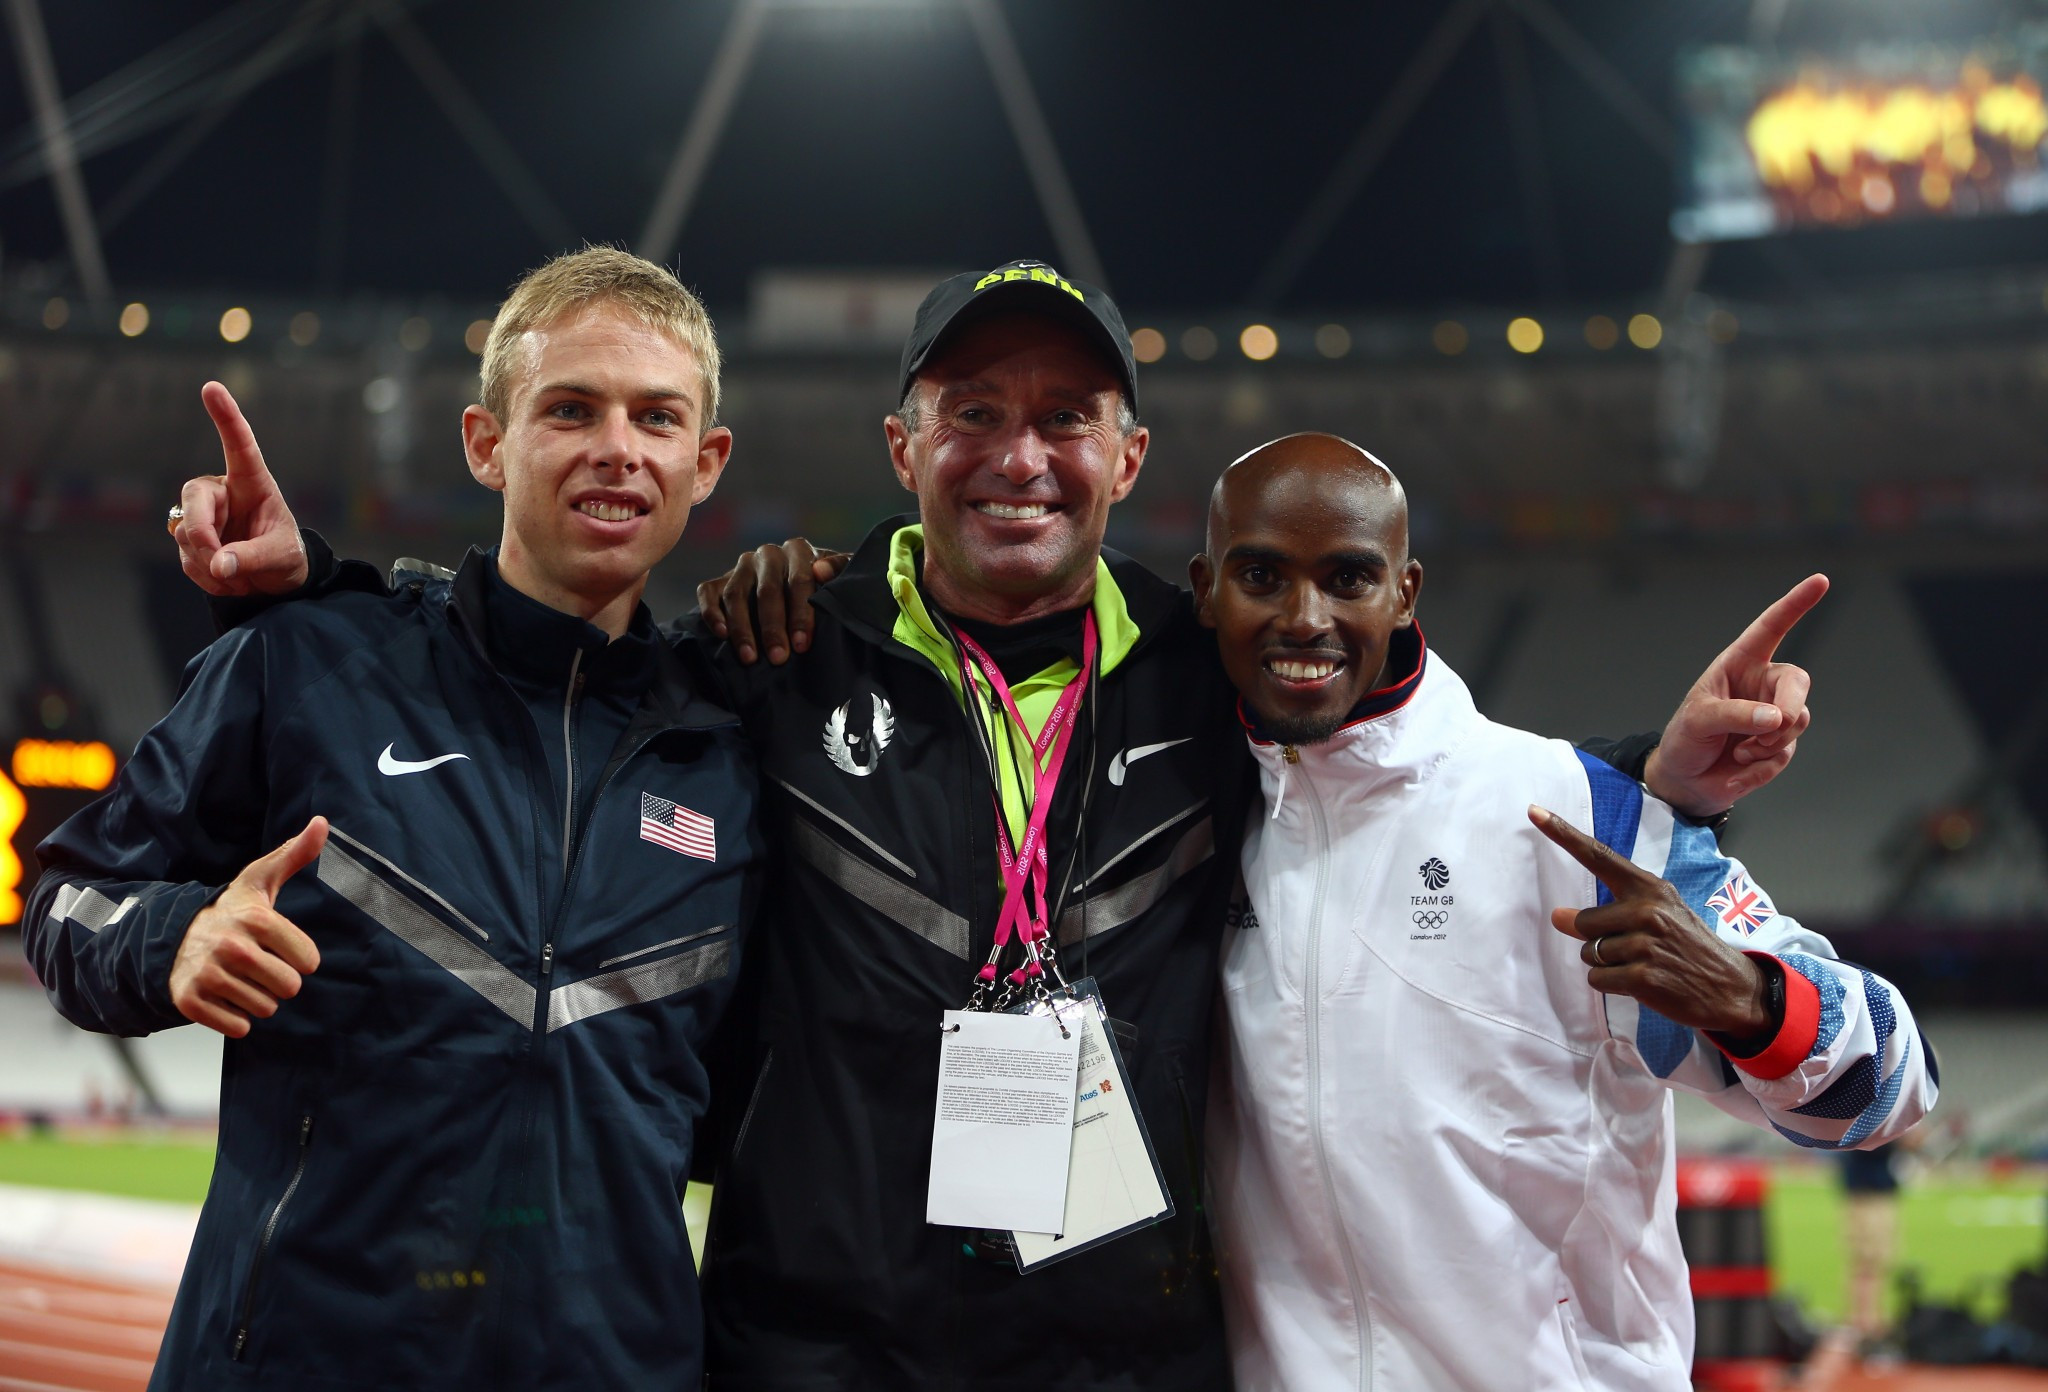 Athletes trained by Alberto Salazar, including Britain's four-time Olympic gold medallist Sir Mo Farah, are to be investigated by WADA following the American's four-year doping ban ©Getty Images